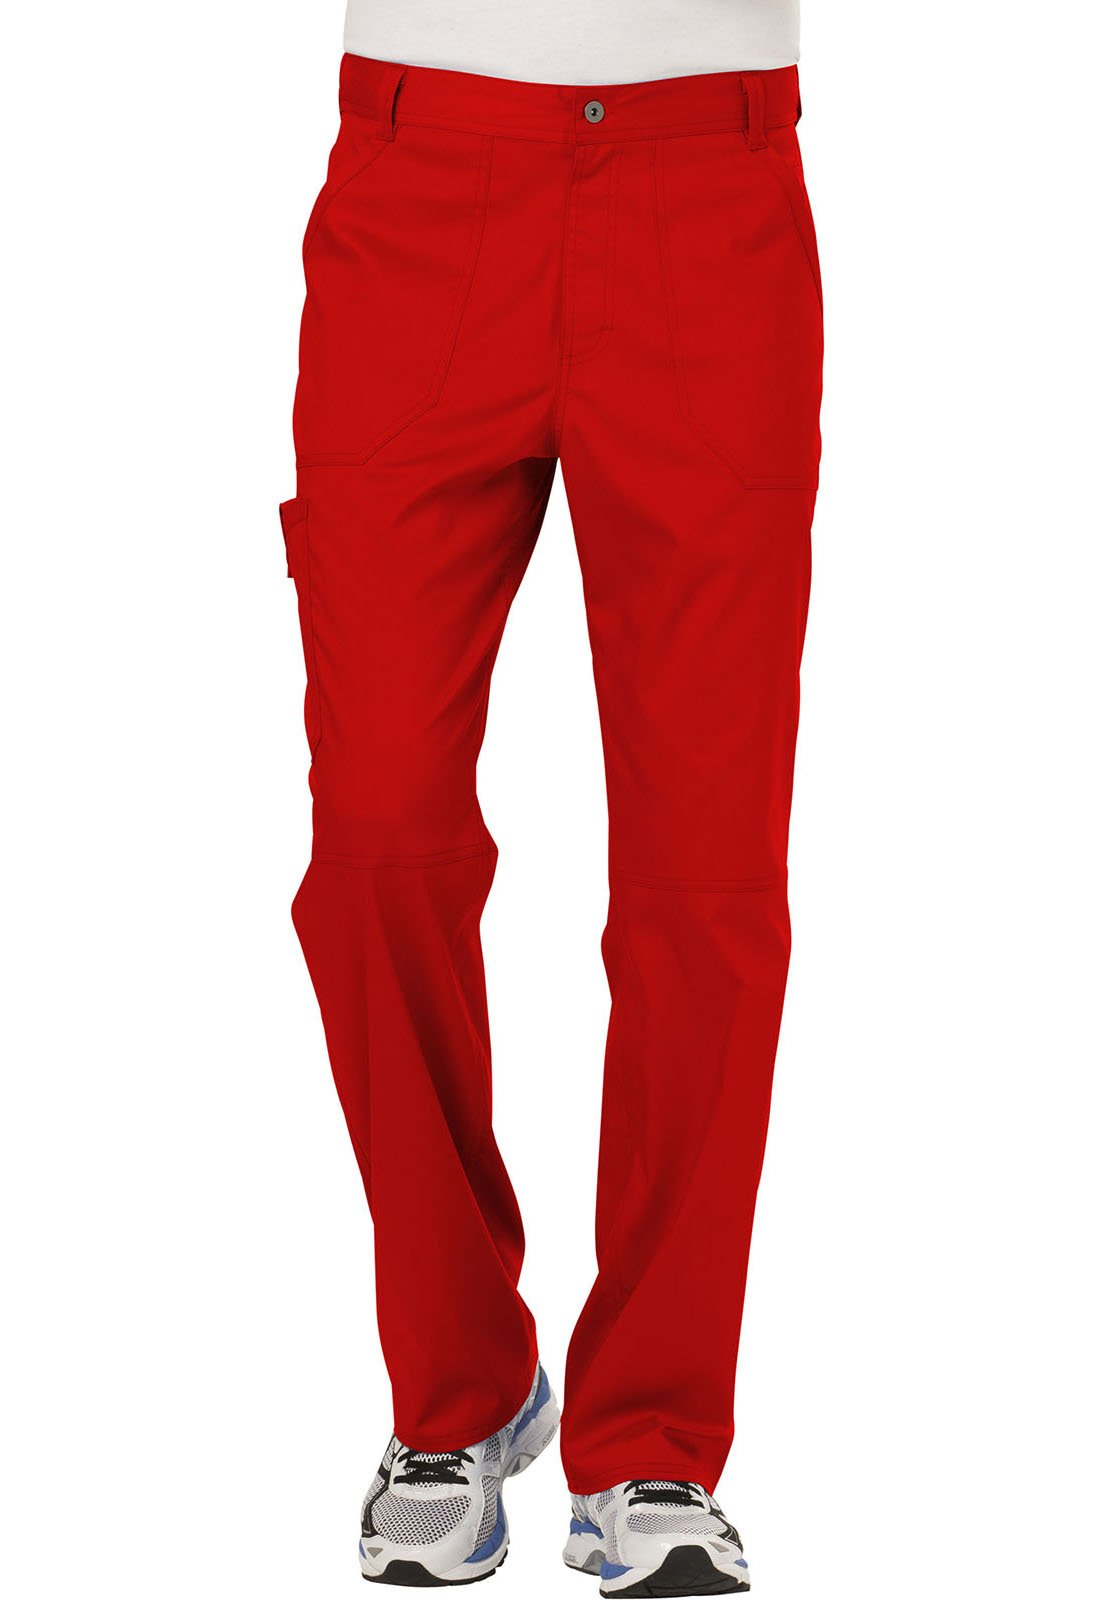 WW Revolution by Cherokee Men's Fly Front Pant Short, Red, 2XL